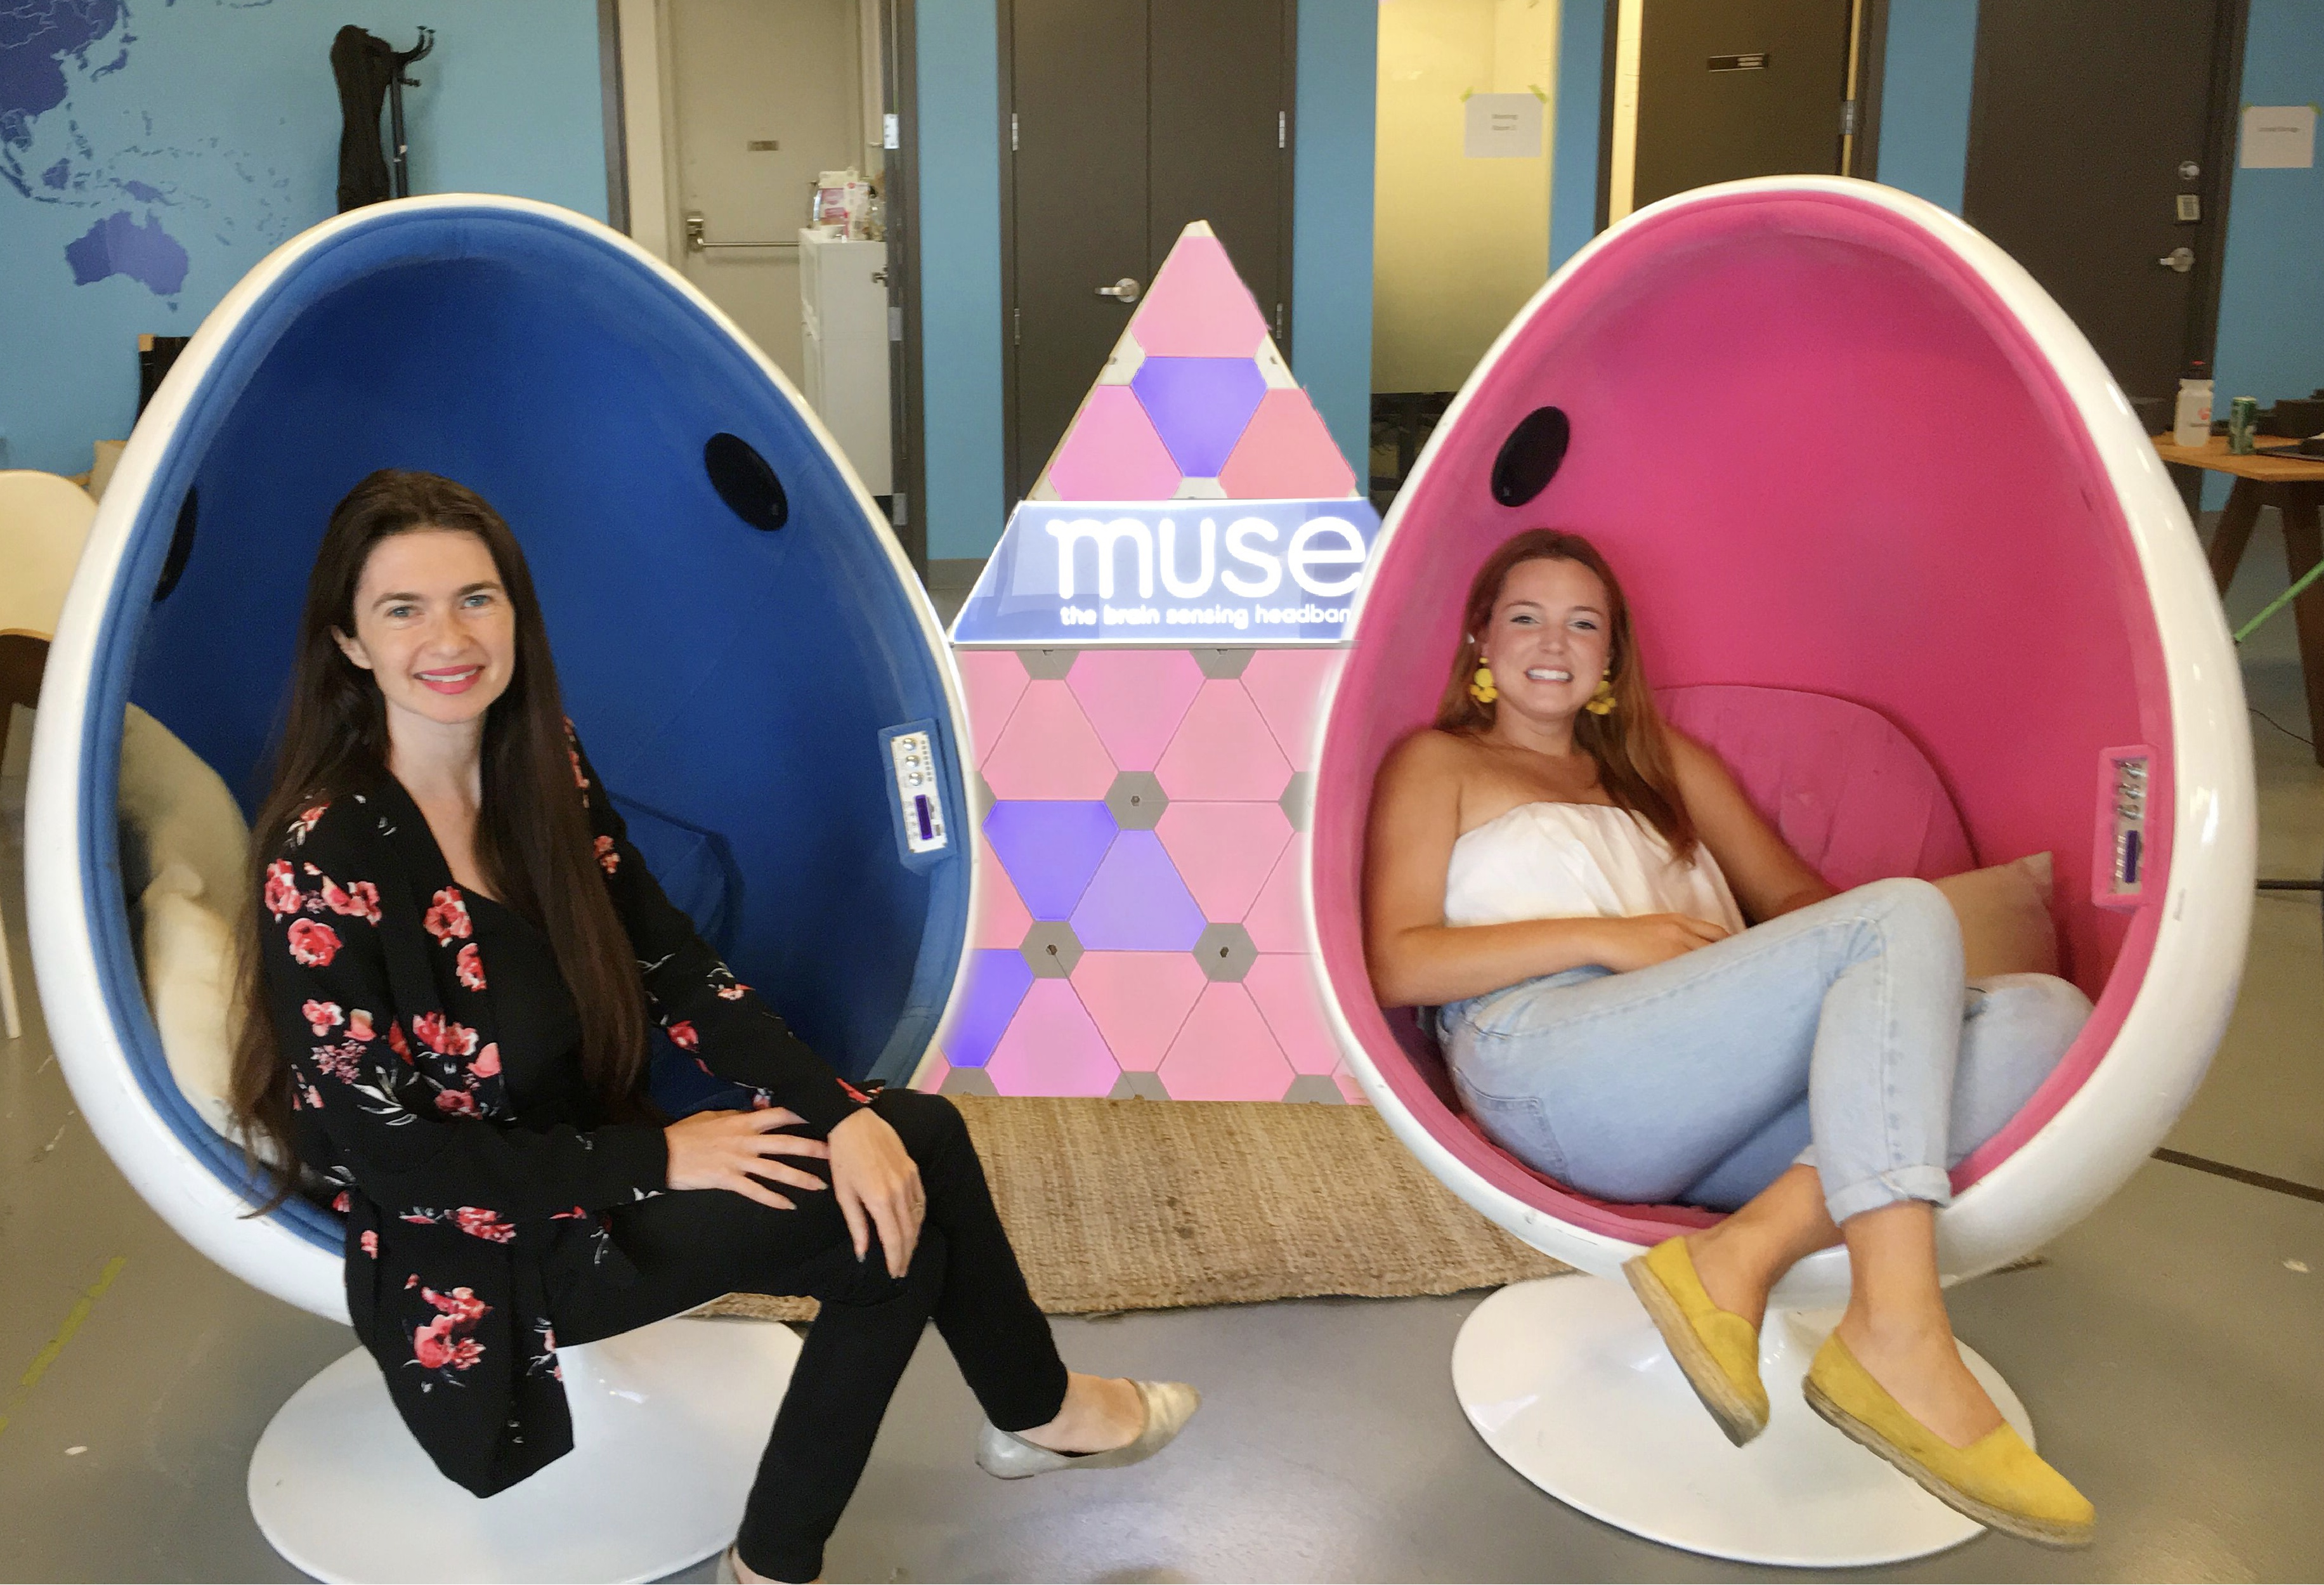 muse interns